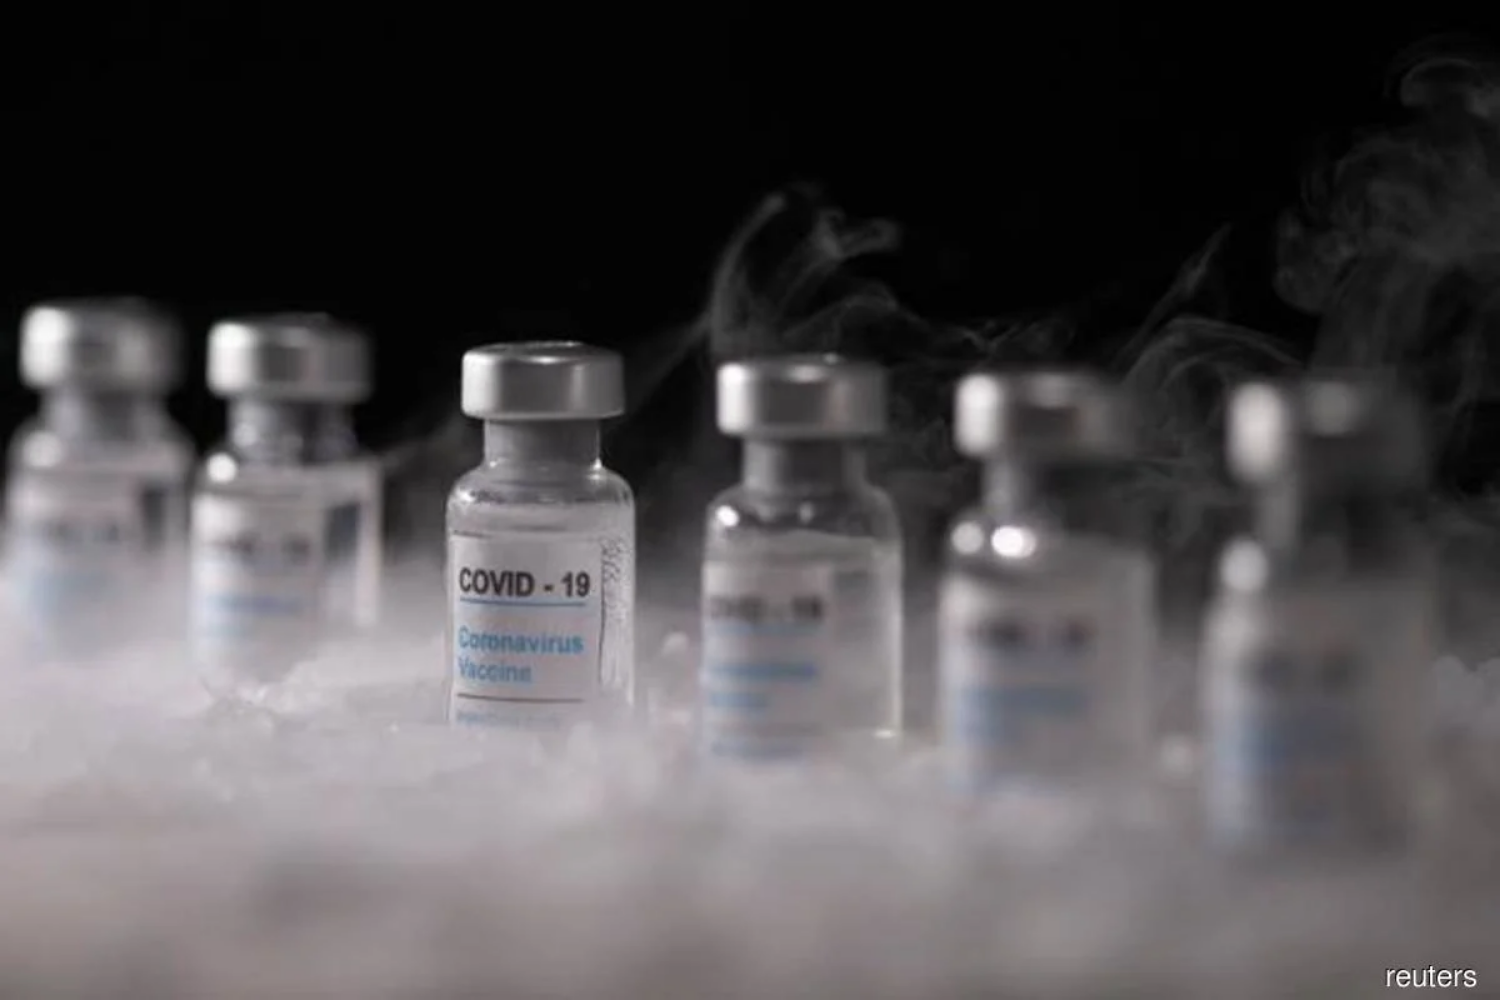 South Korea probes deaths of two who received AstraZeneca COVID-19 vaccine